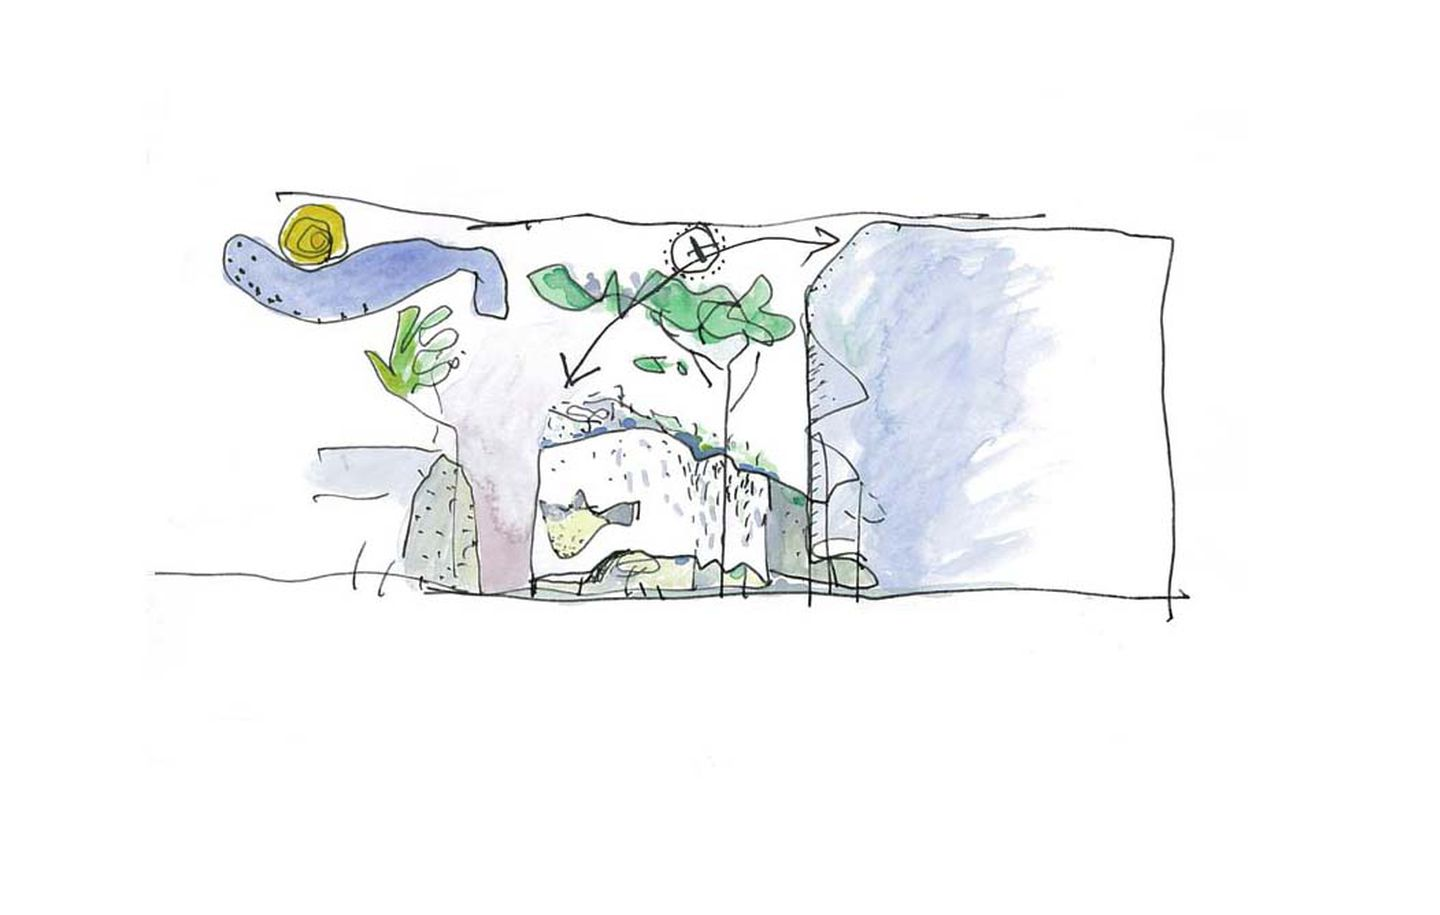 Hand drawn watercolour concept sketch of university campus for UTS in Ultimo Sydney designed by Durbach Block Jaggers Architects